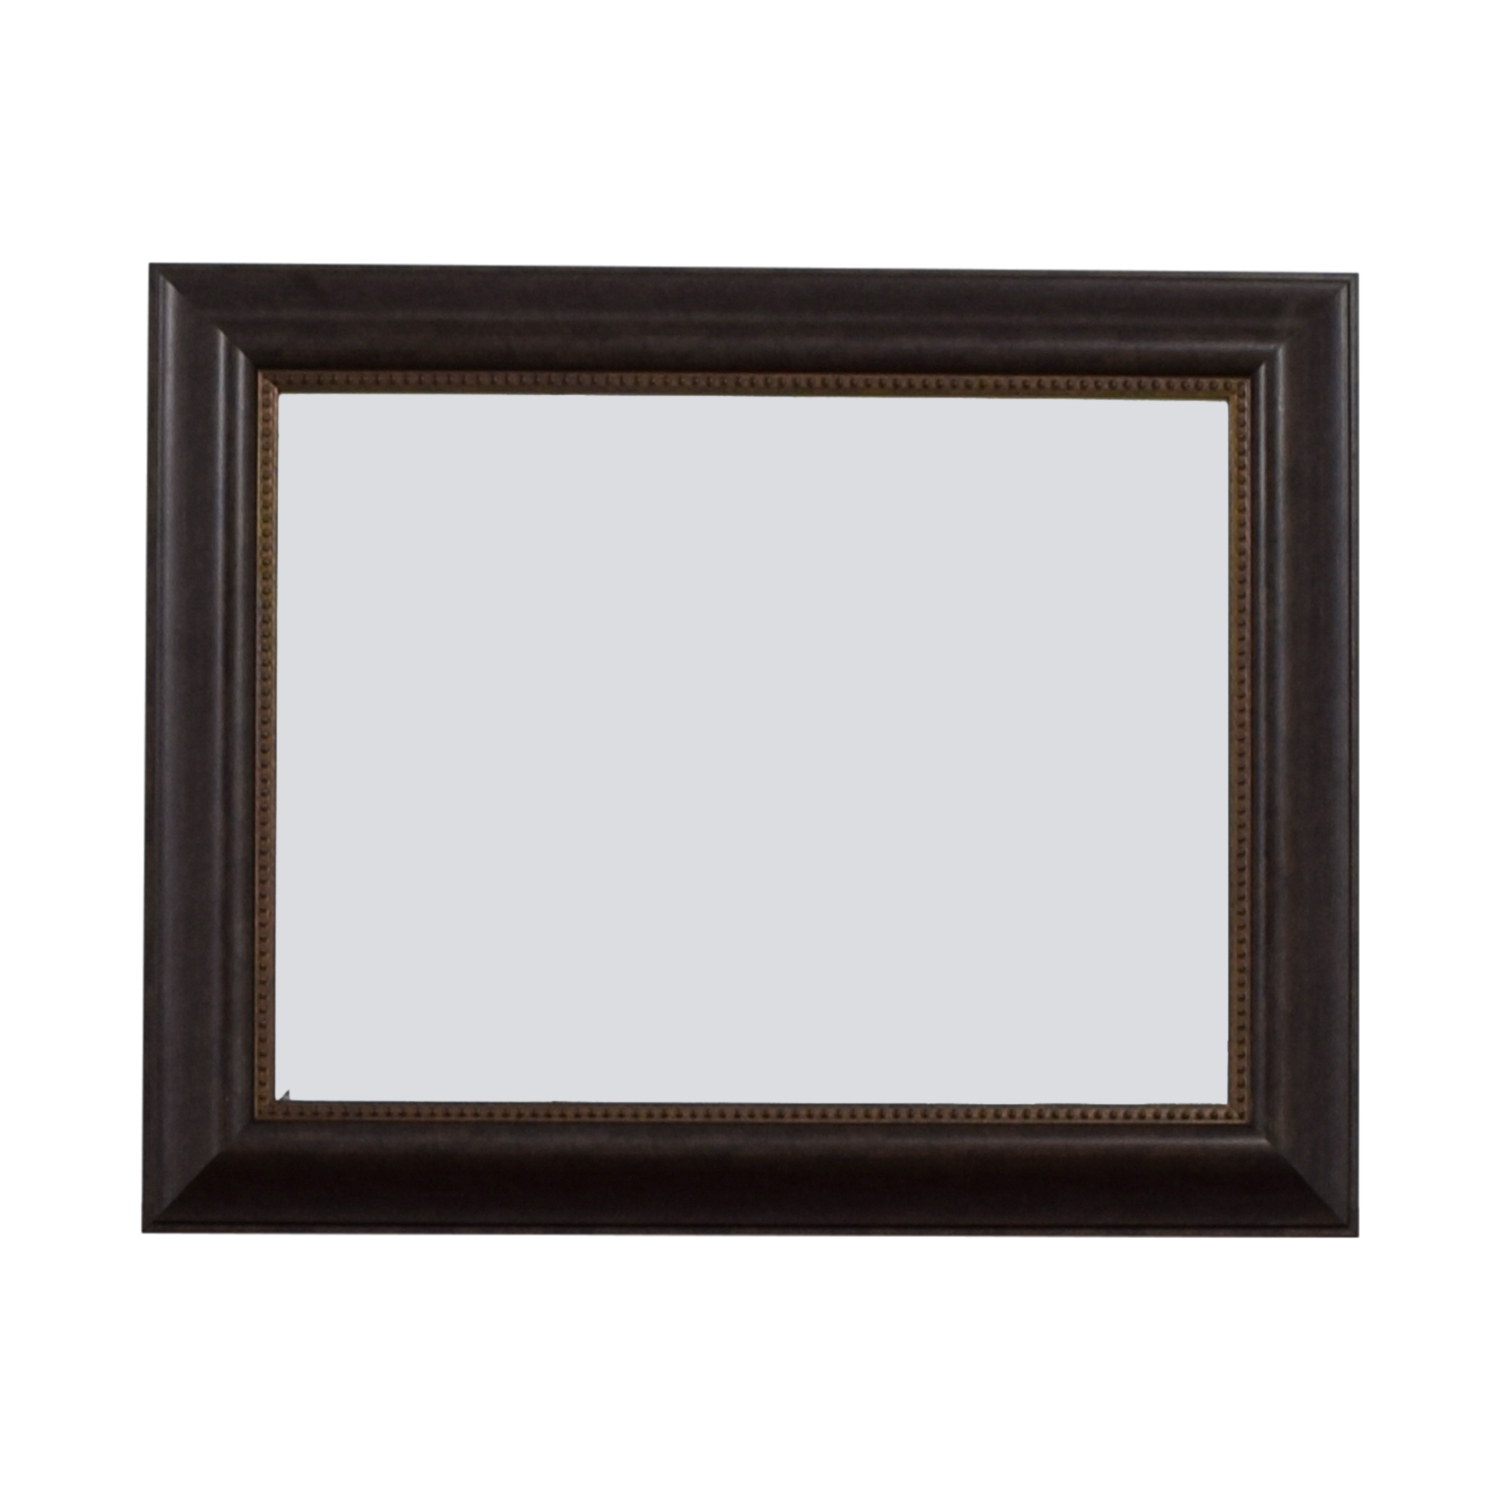 Wood Framed Mirror coupon